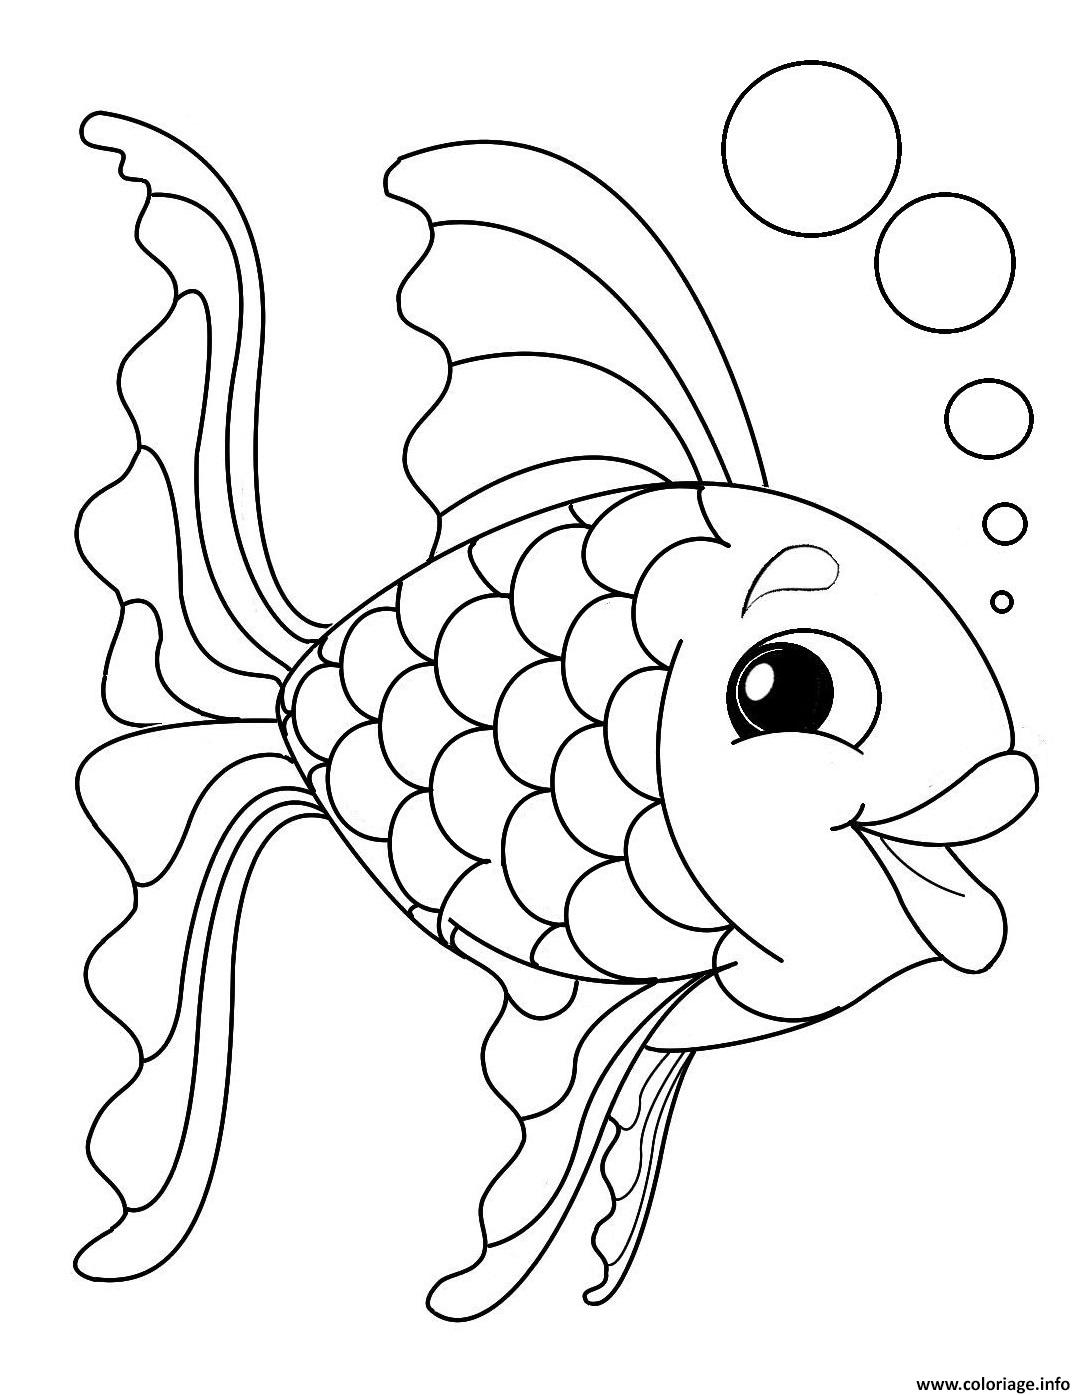 Coloriage poisson arc en ciel dessin - Dessin poisson simple ...